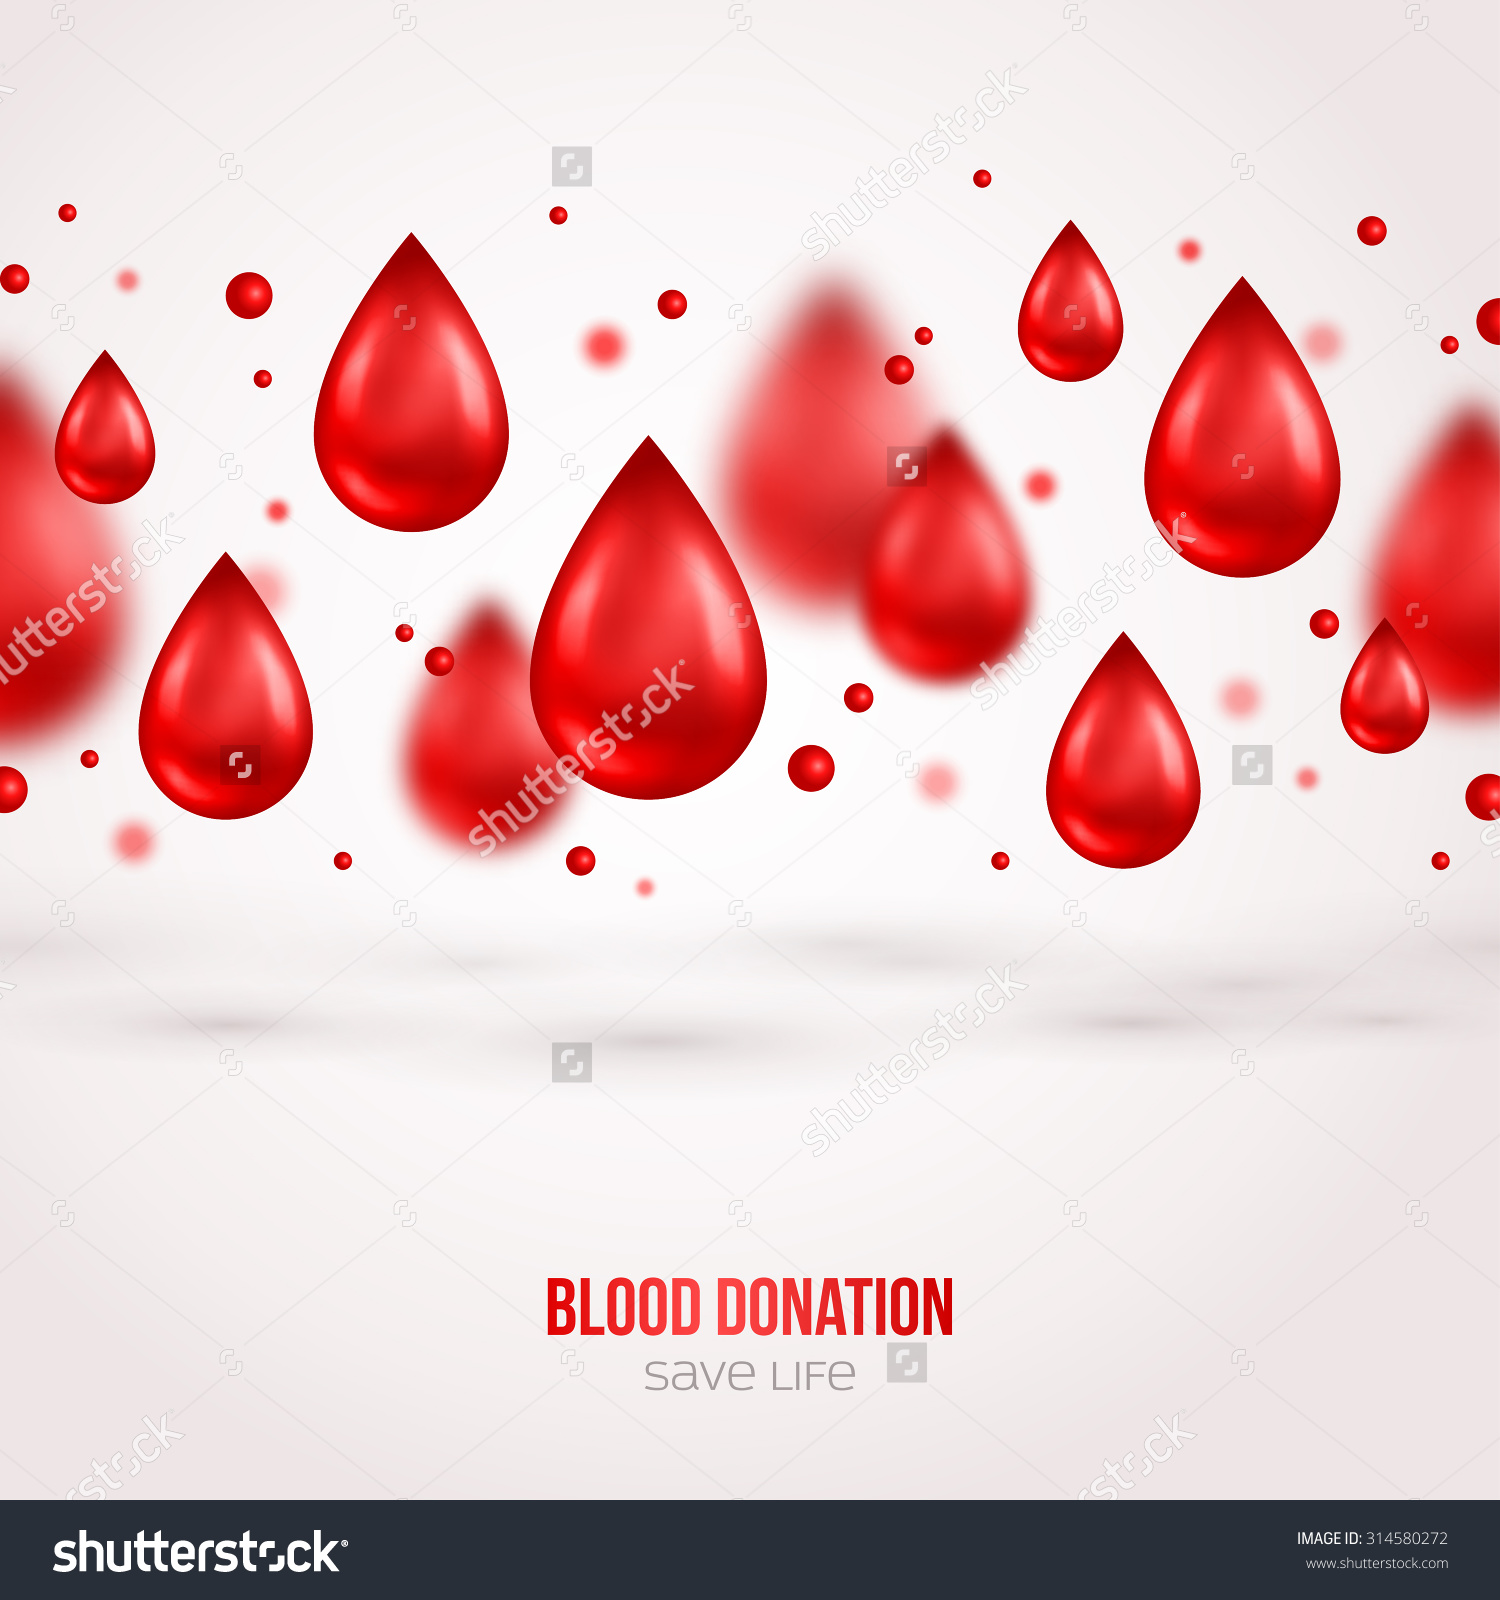 42 most wonderful world blood donor day wish pictures and images blood donation save life world blood donor day thecheapjerseys Image collections